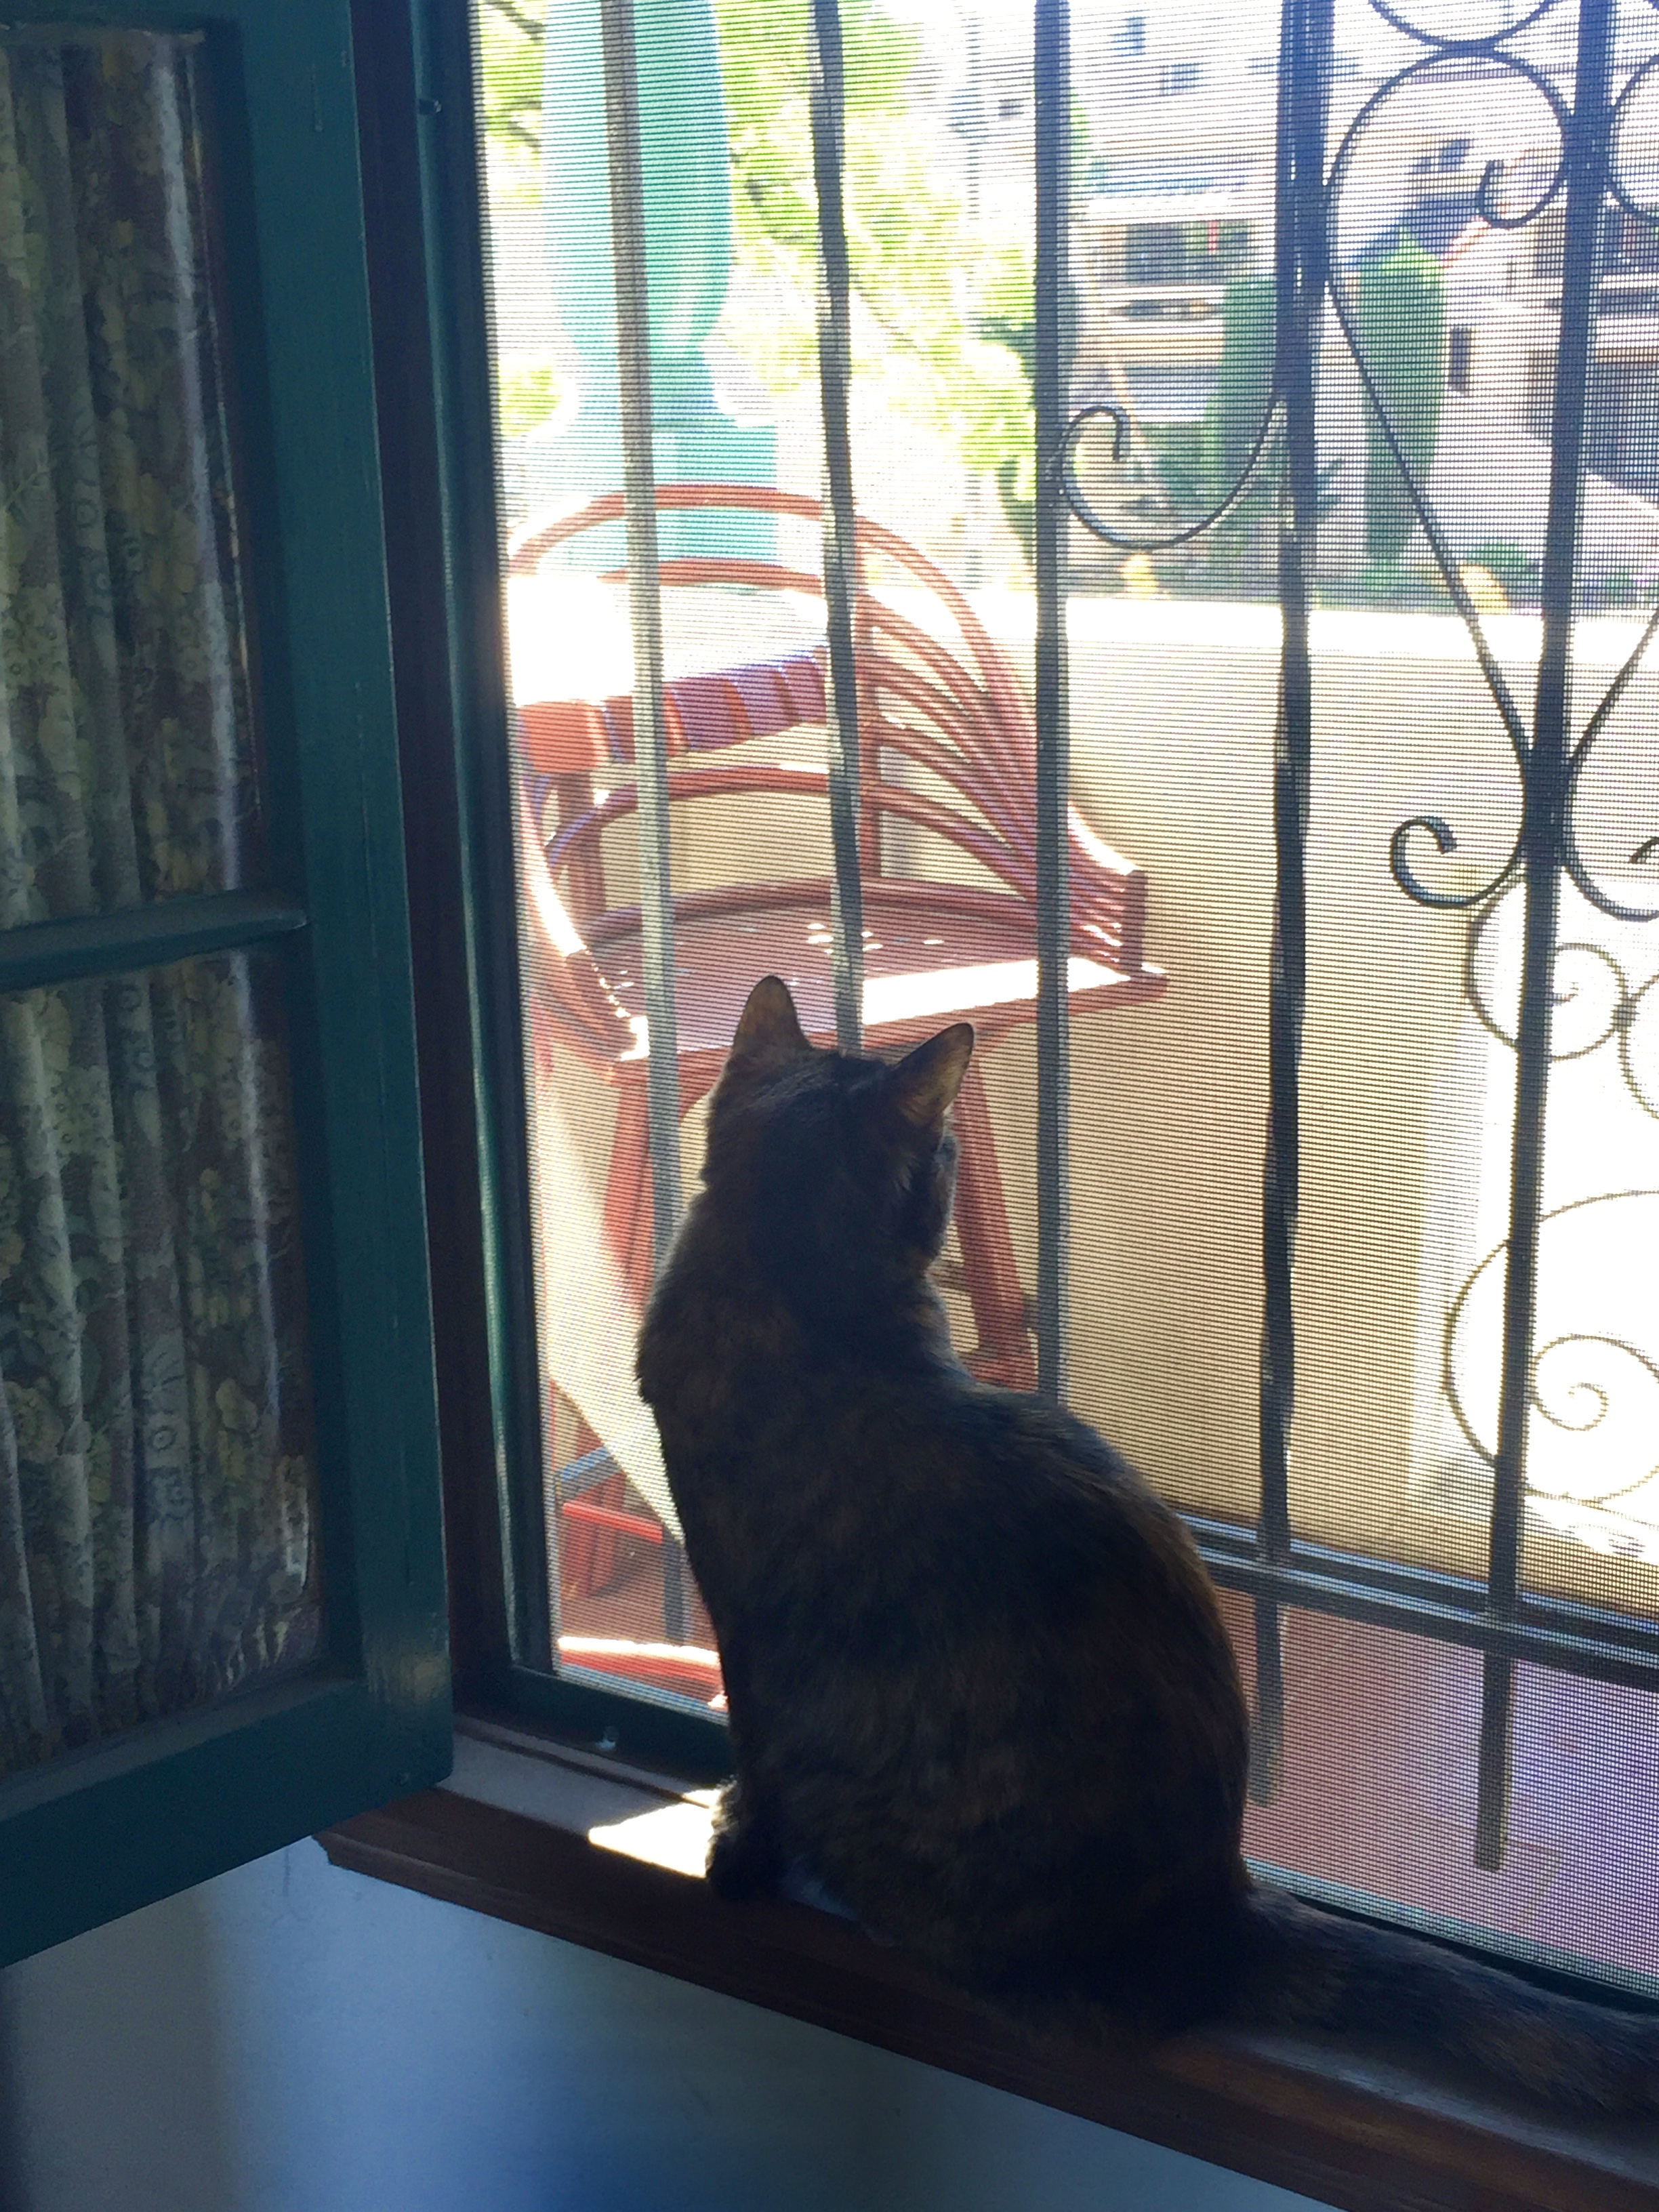 DORA BY THE WINDOW, APRIL 1, 2017 - Los Angeles, CA